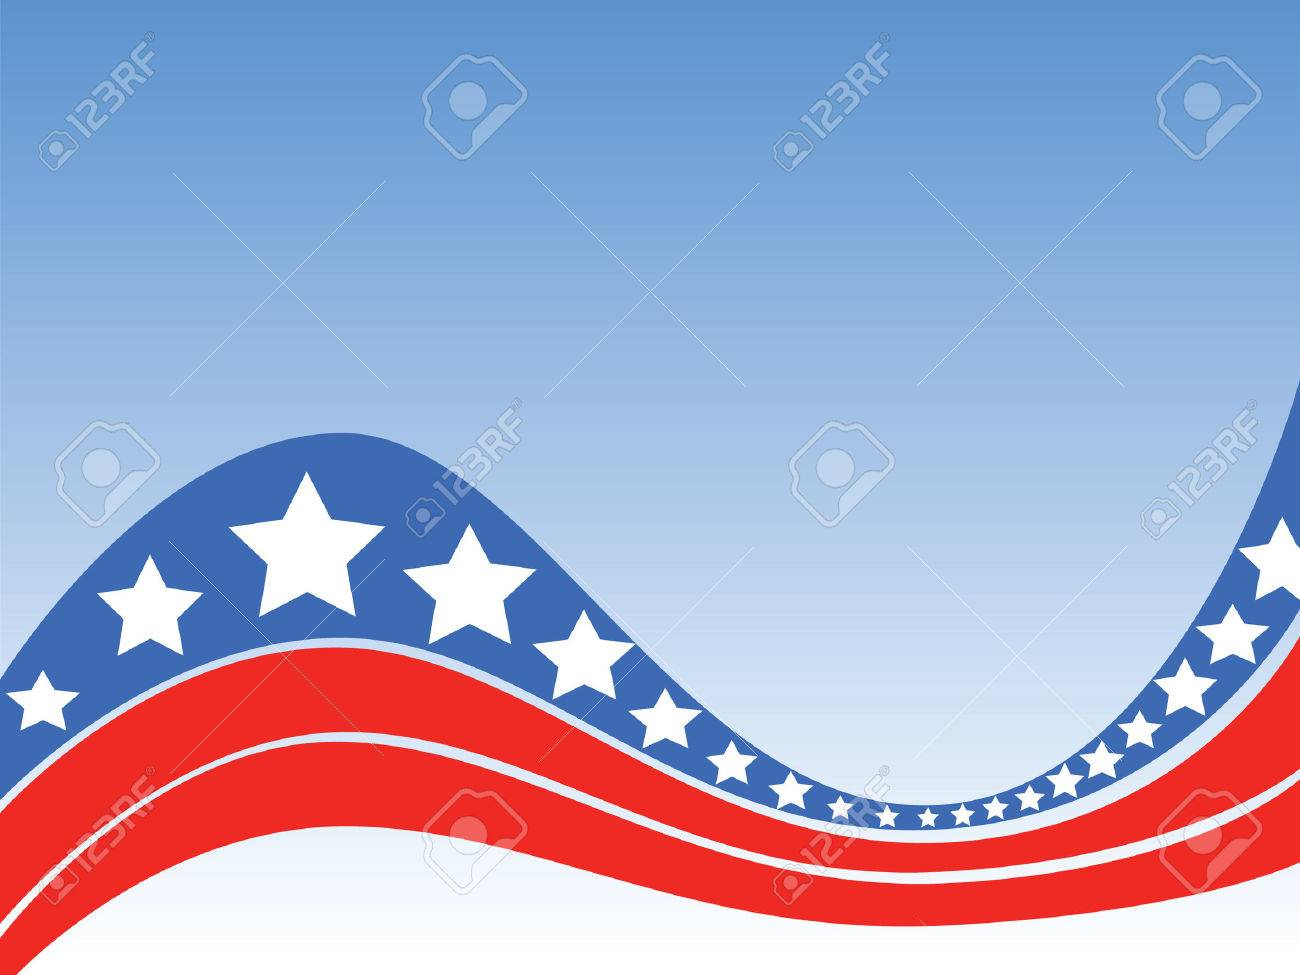 Special background celebrating the independence of the United States of America, with stylized stars and stripes. Stock Vector - 3168592